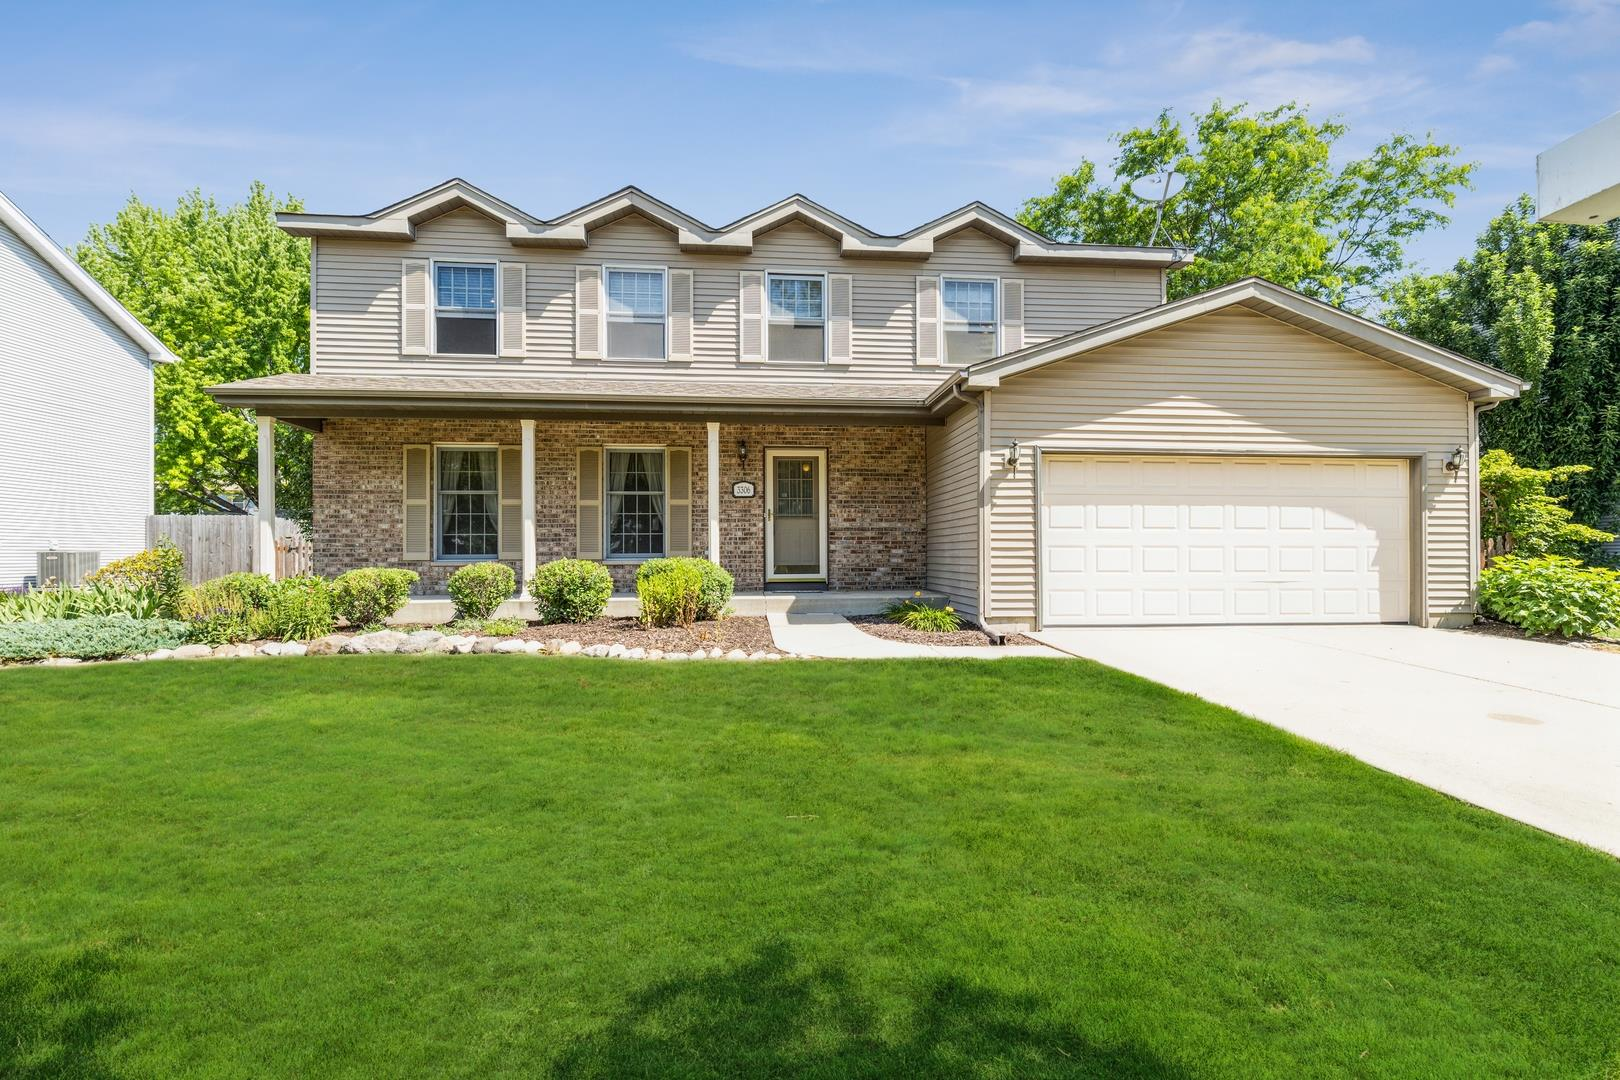 3306 Turnberry Drive, McHenry, IL 60050 - #: 11121057